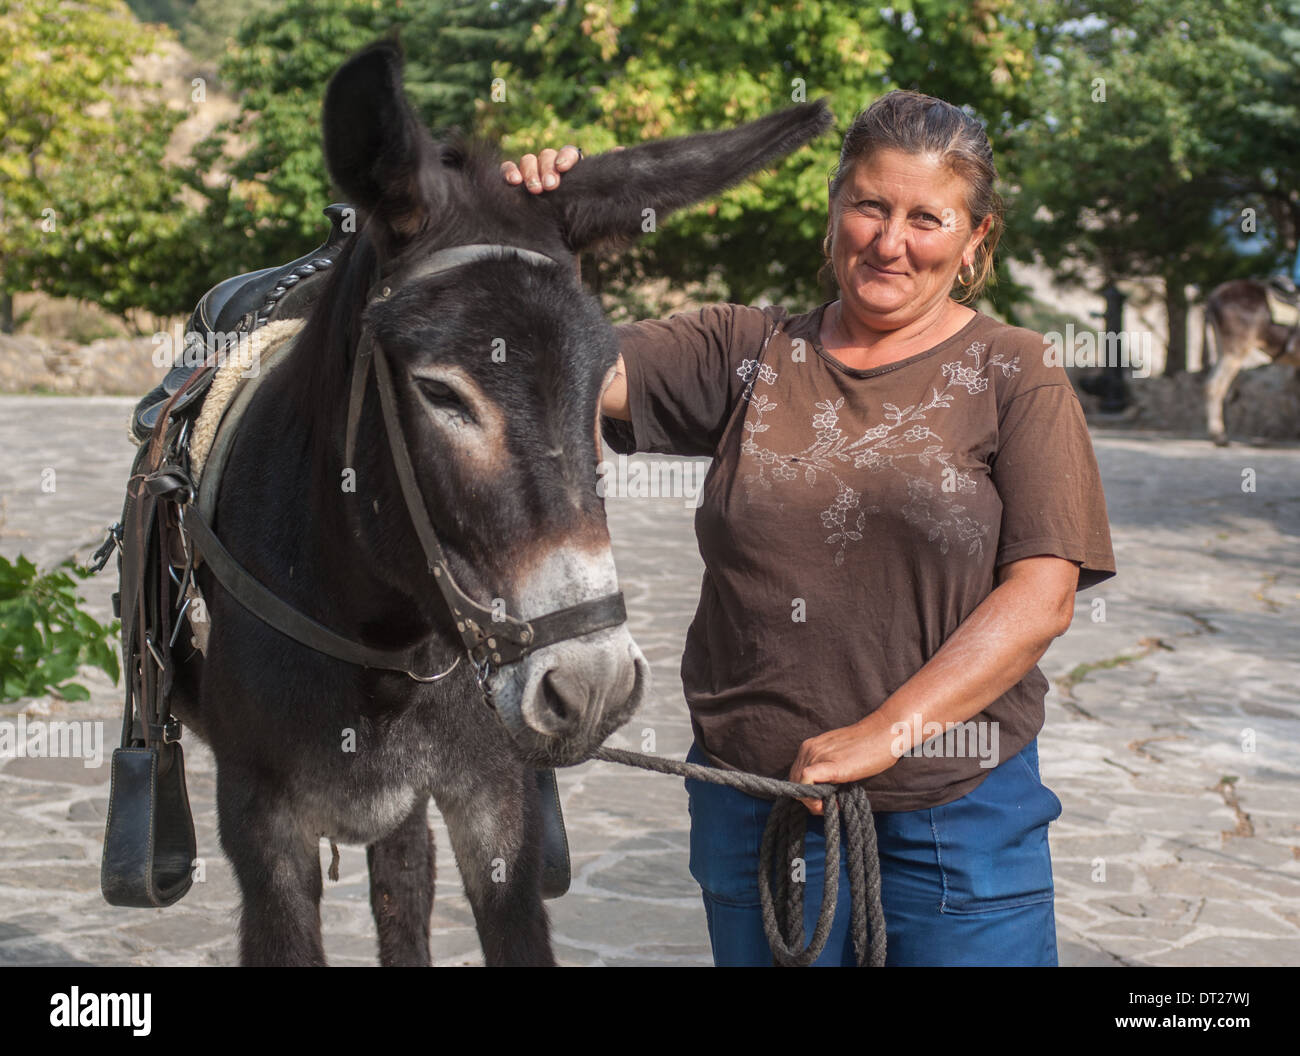 donkey and handler  woman and donkey - Stock Image